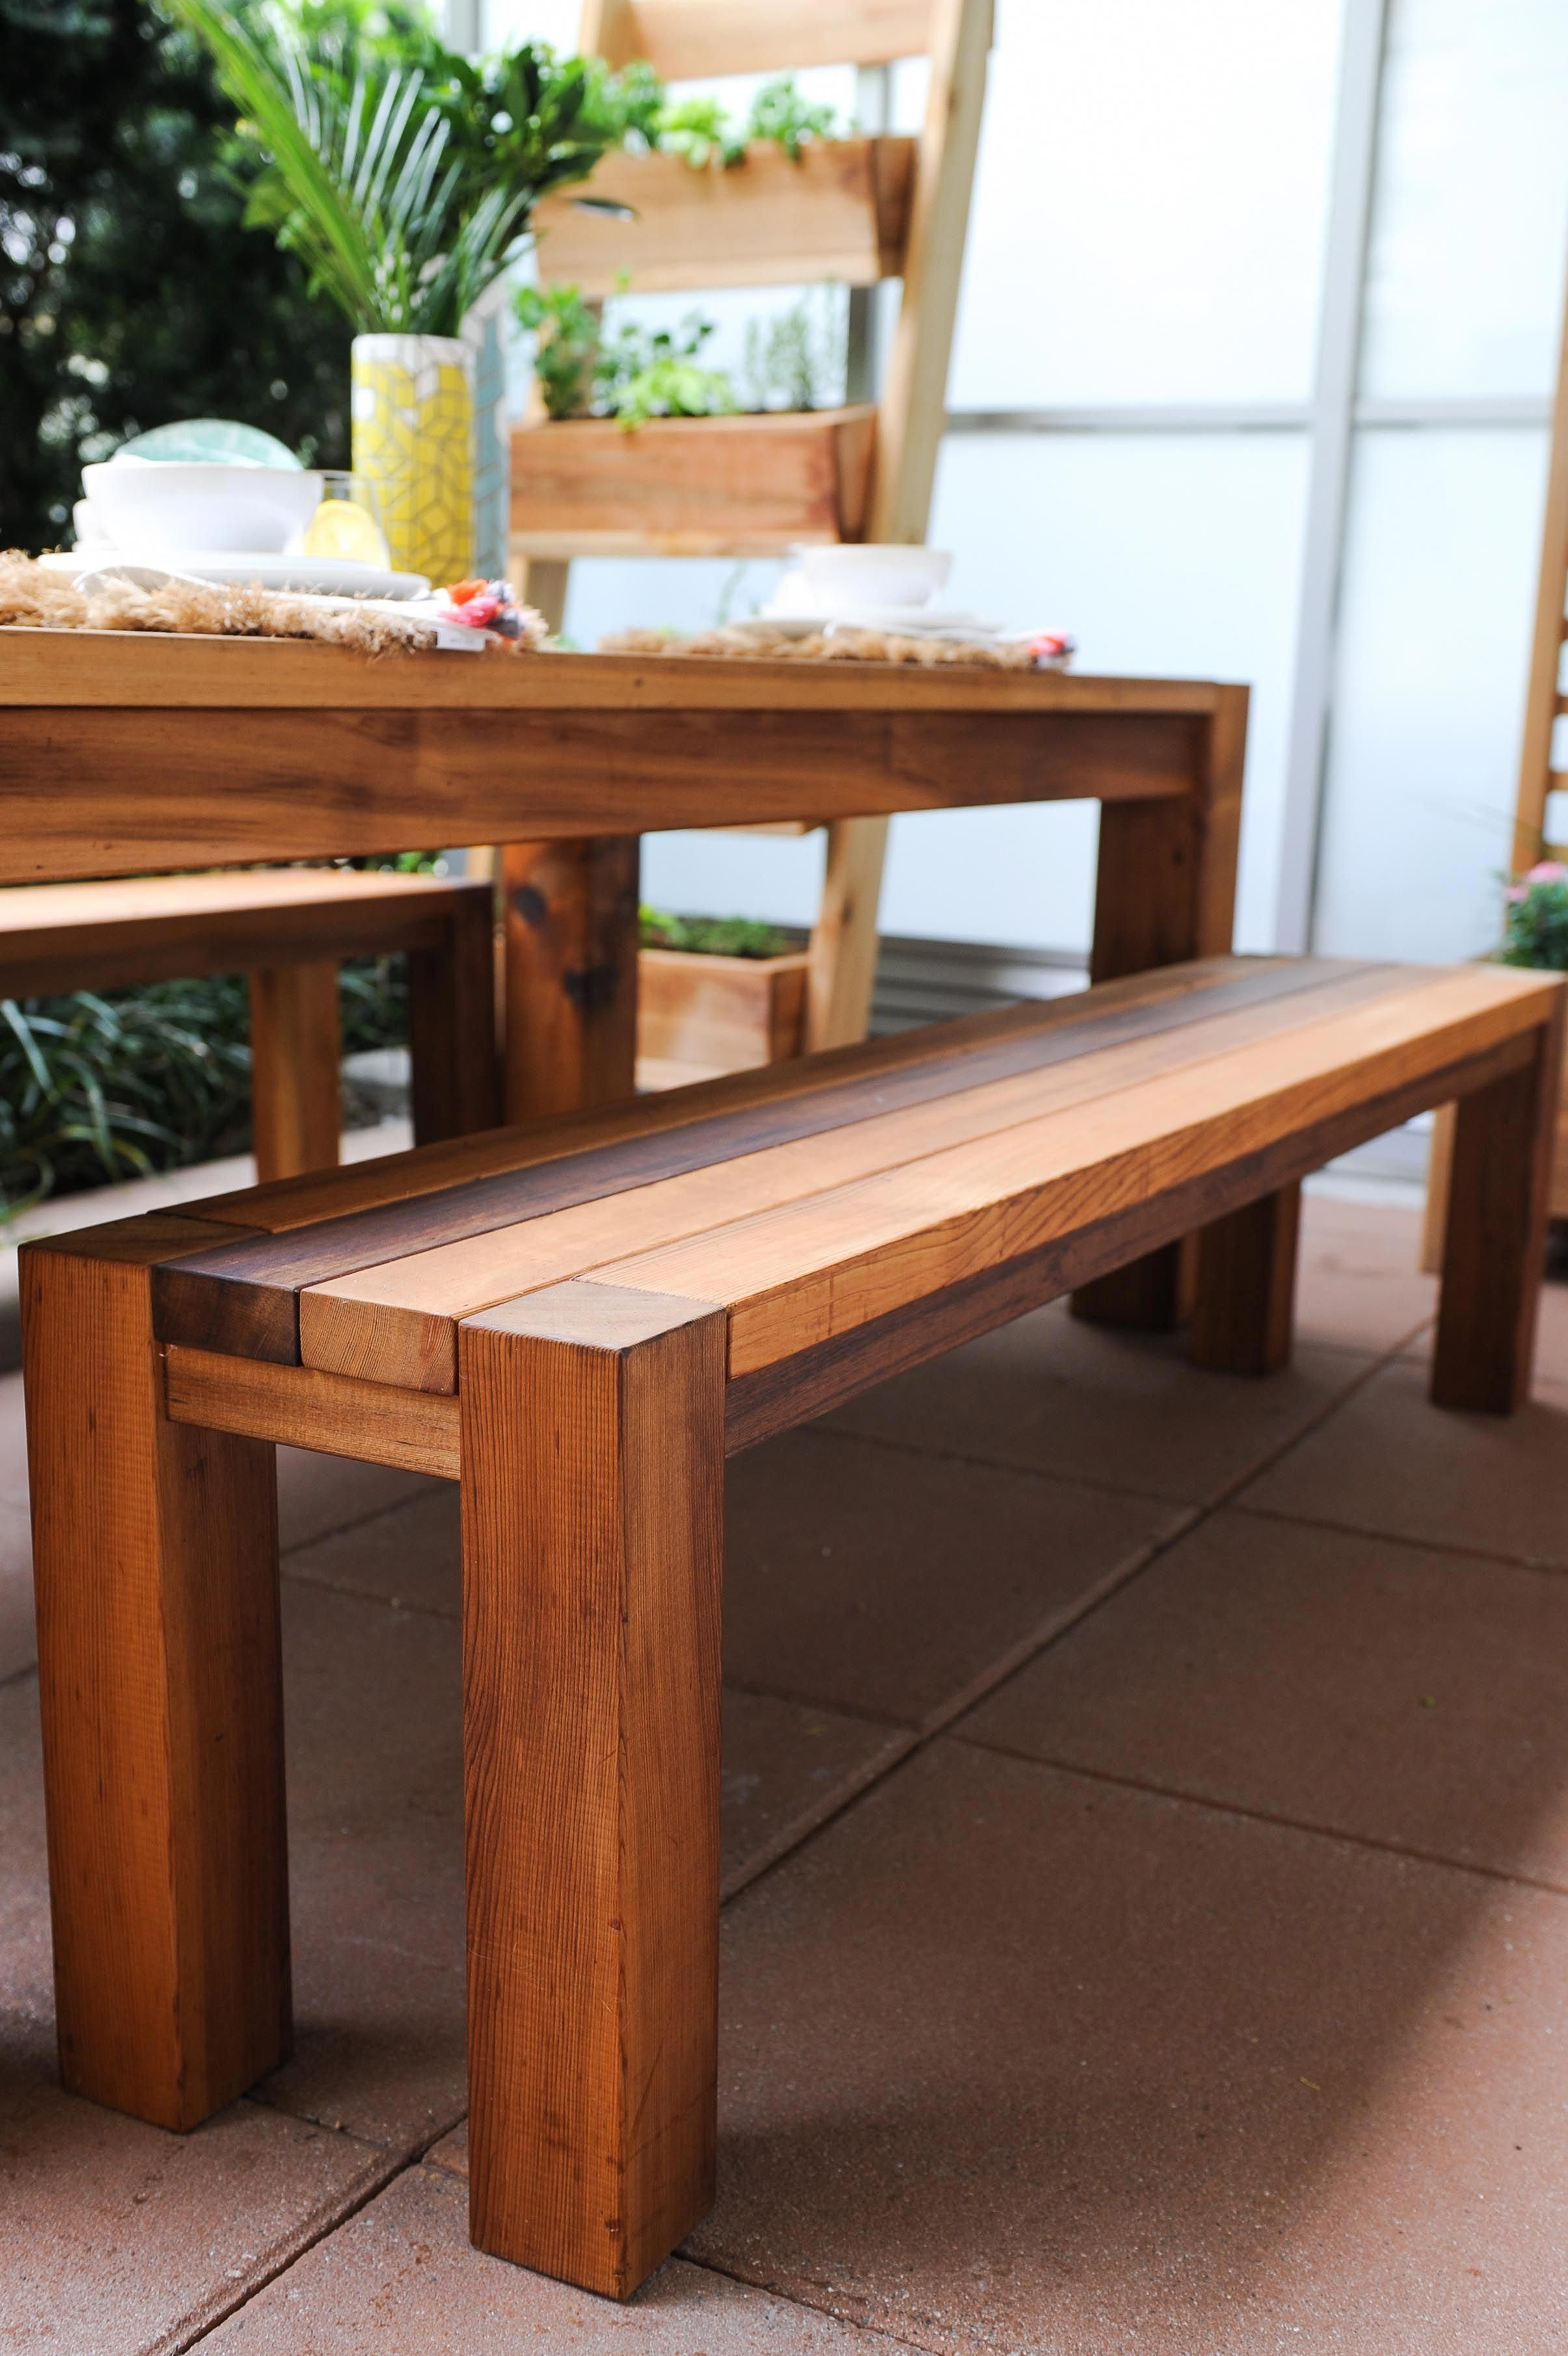 Build this modern cedar dining table in a single weekend